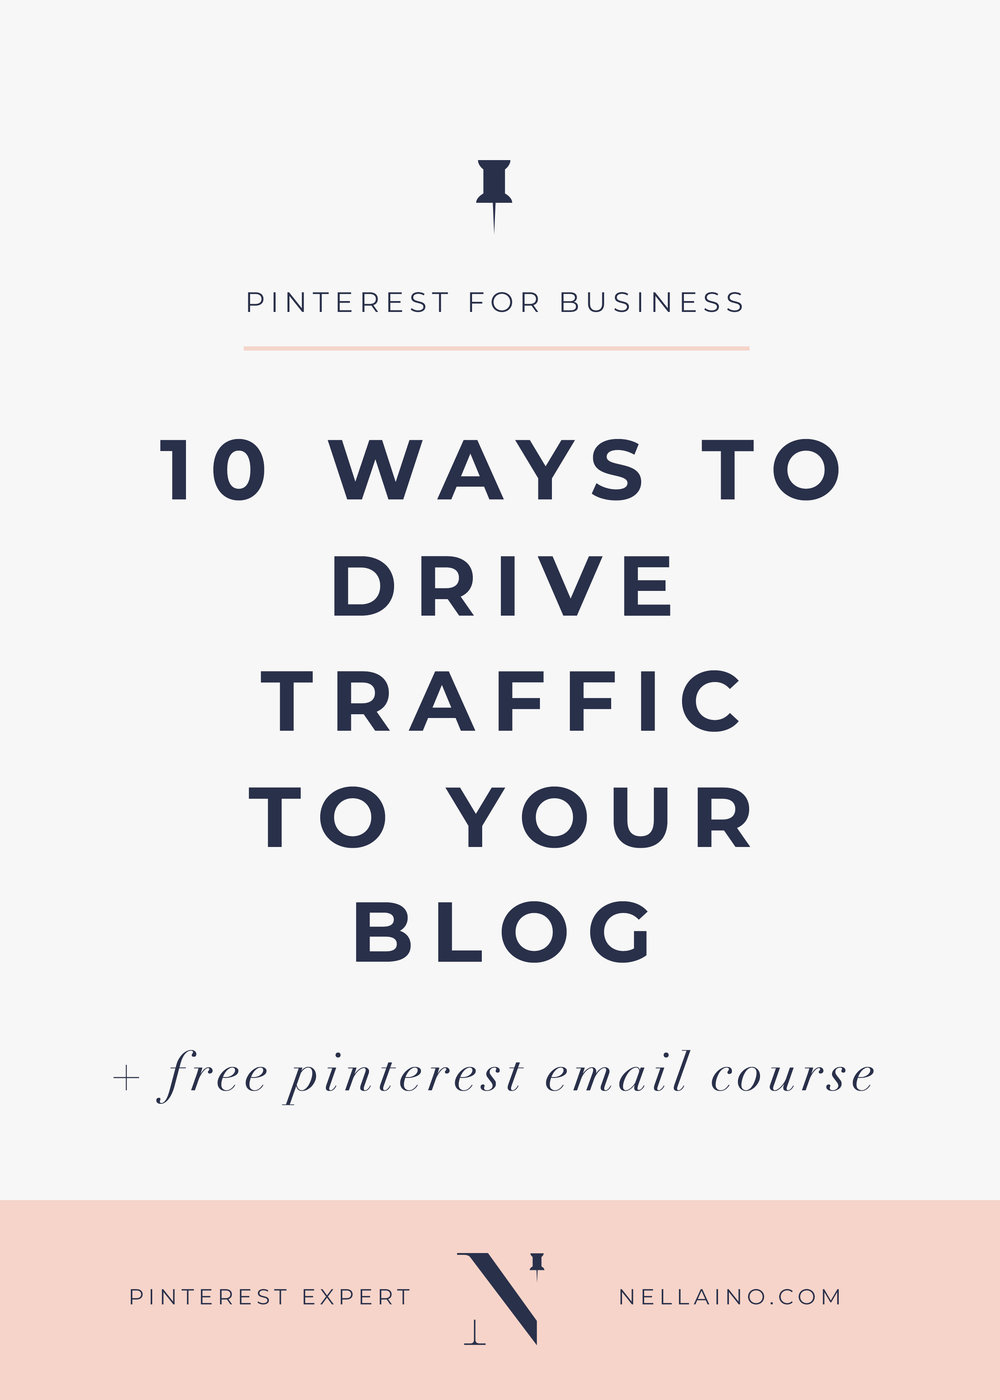 Use-Pinterest-to-drive-traffic-to-your-blog-by-Nellaino.jpg